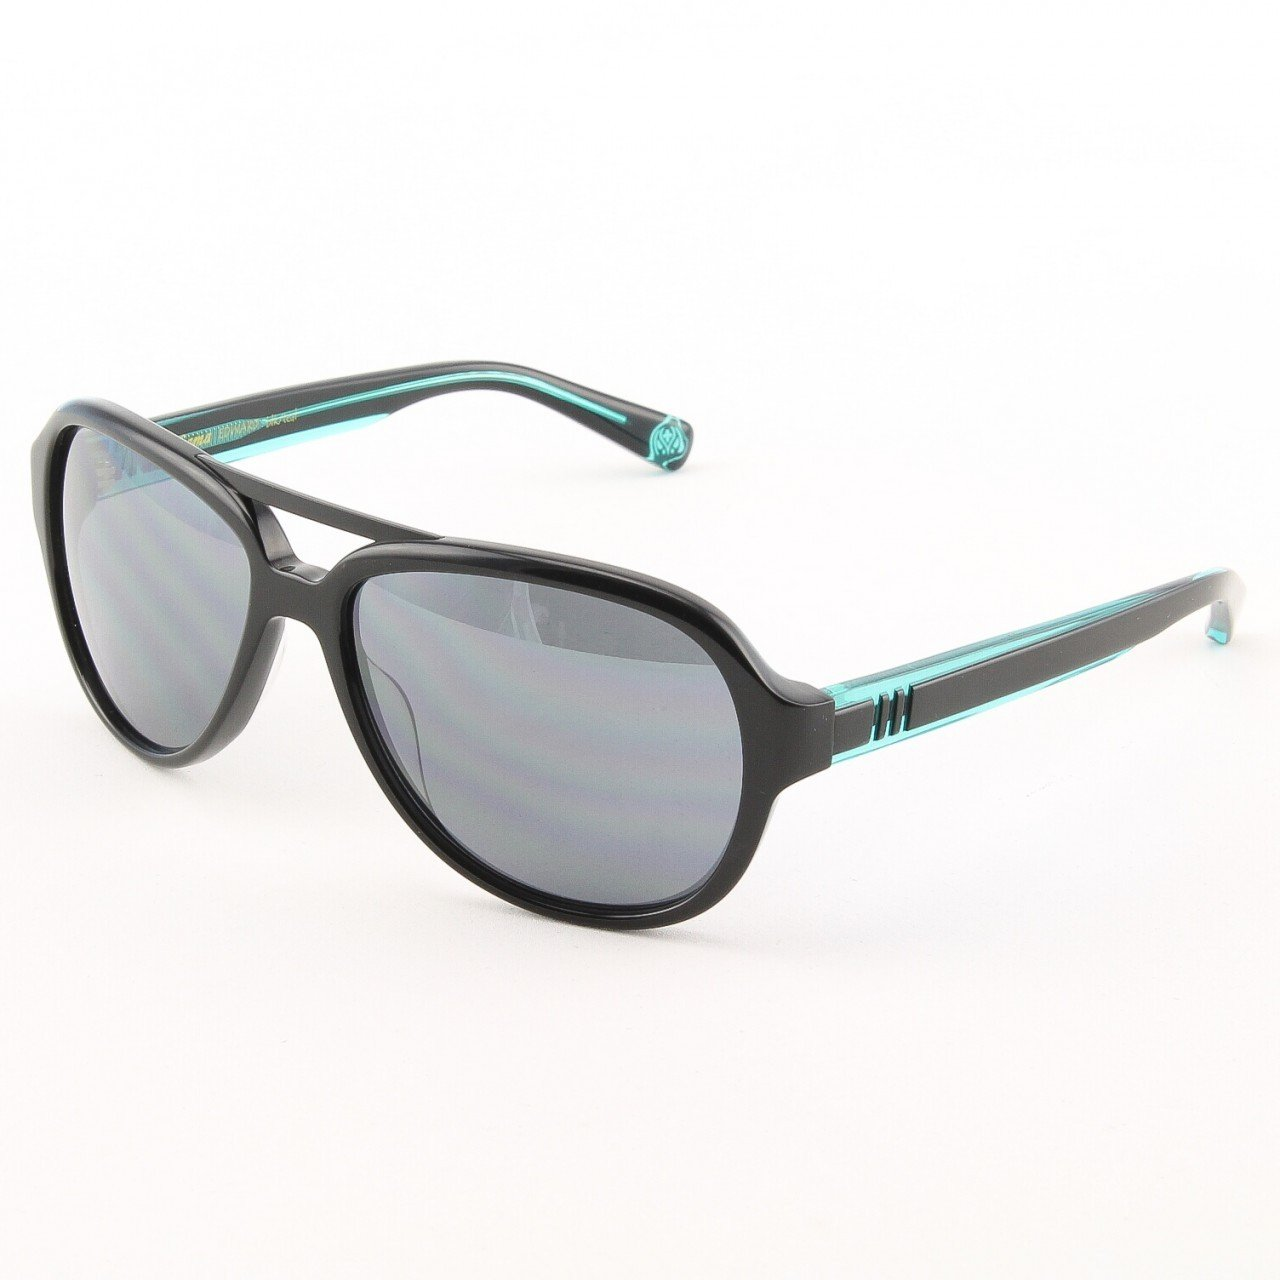 Loree Rodkin Edward Sunglasses by Sama Col. Black Teal with Gray Lenses